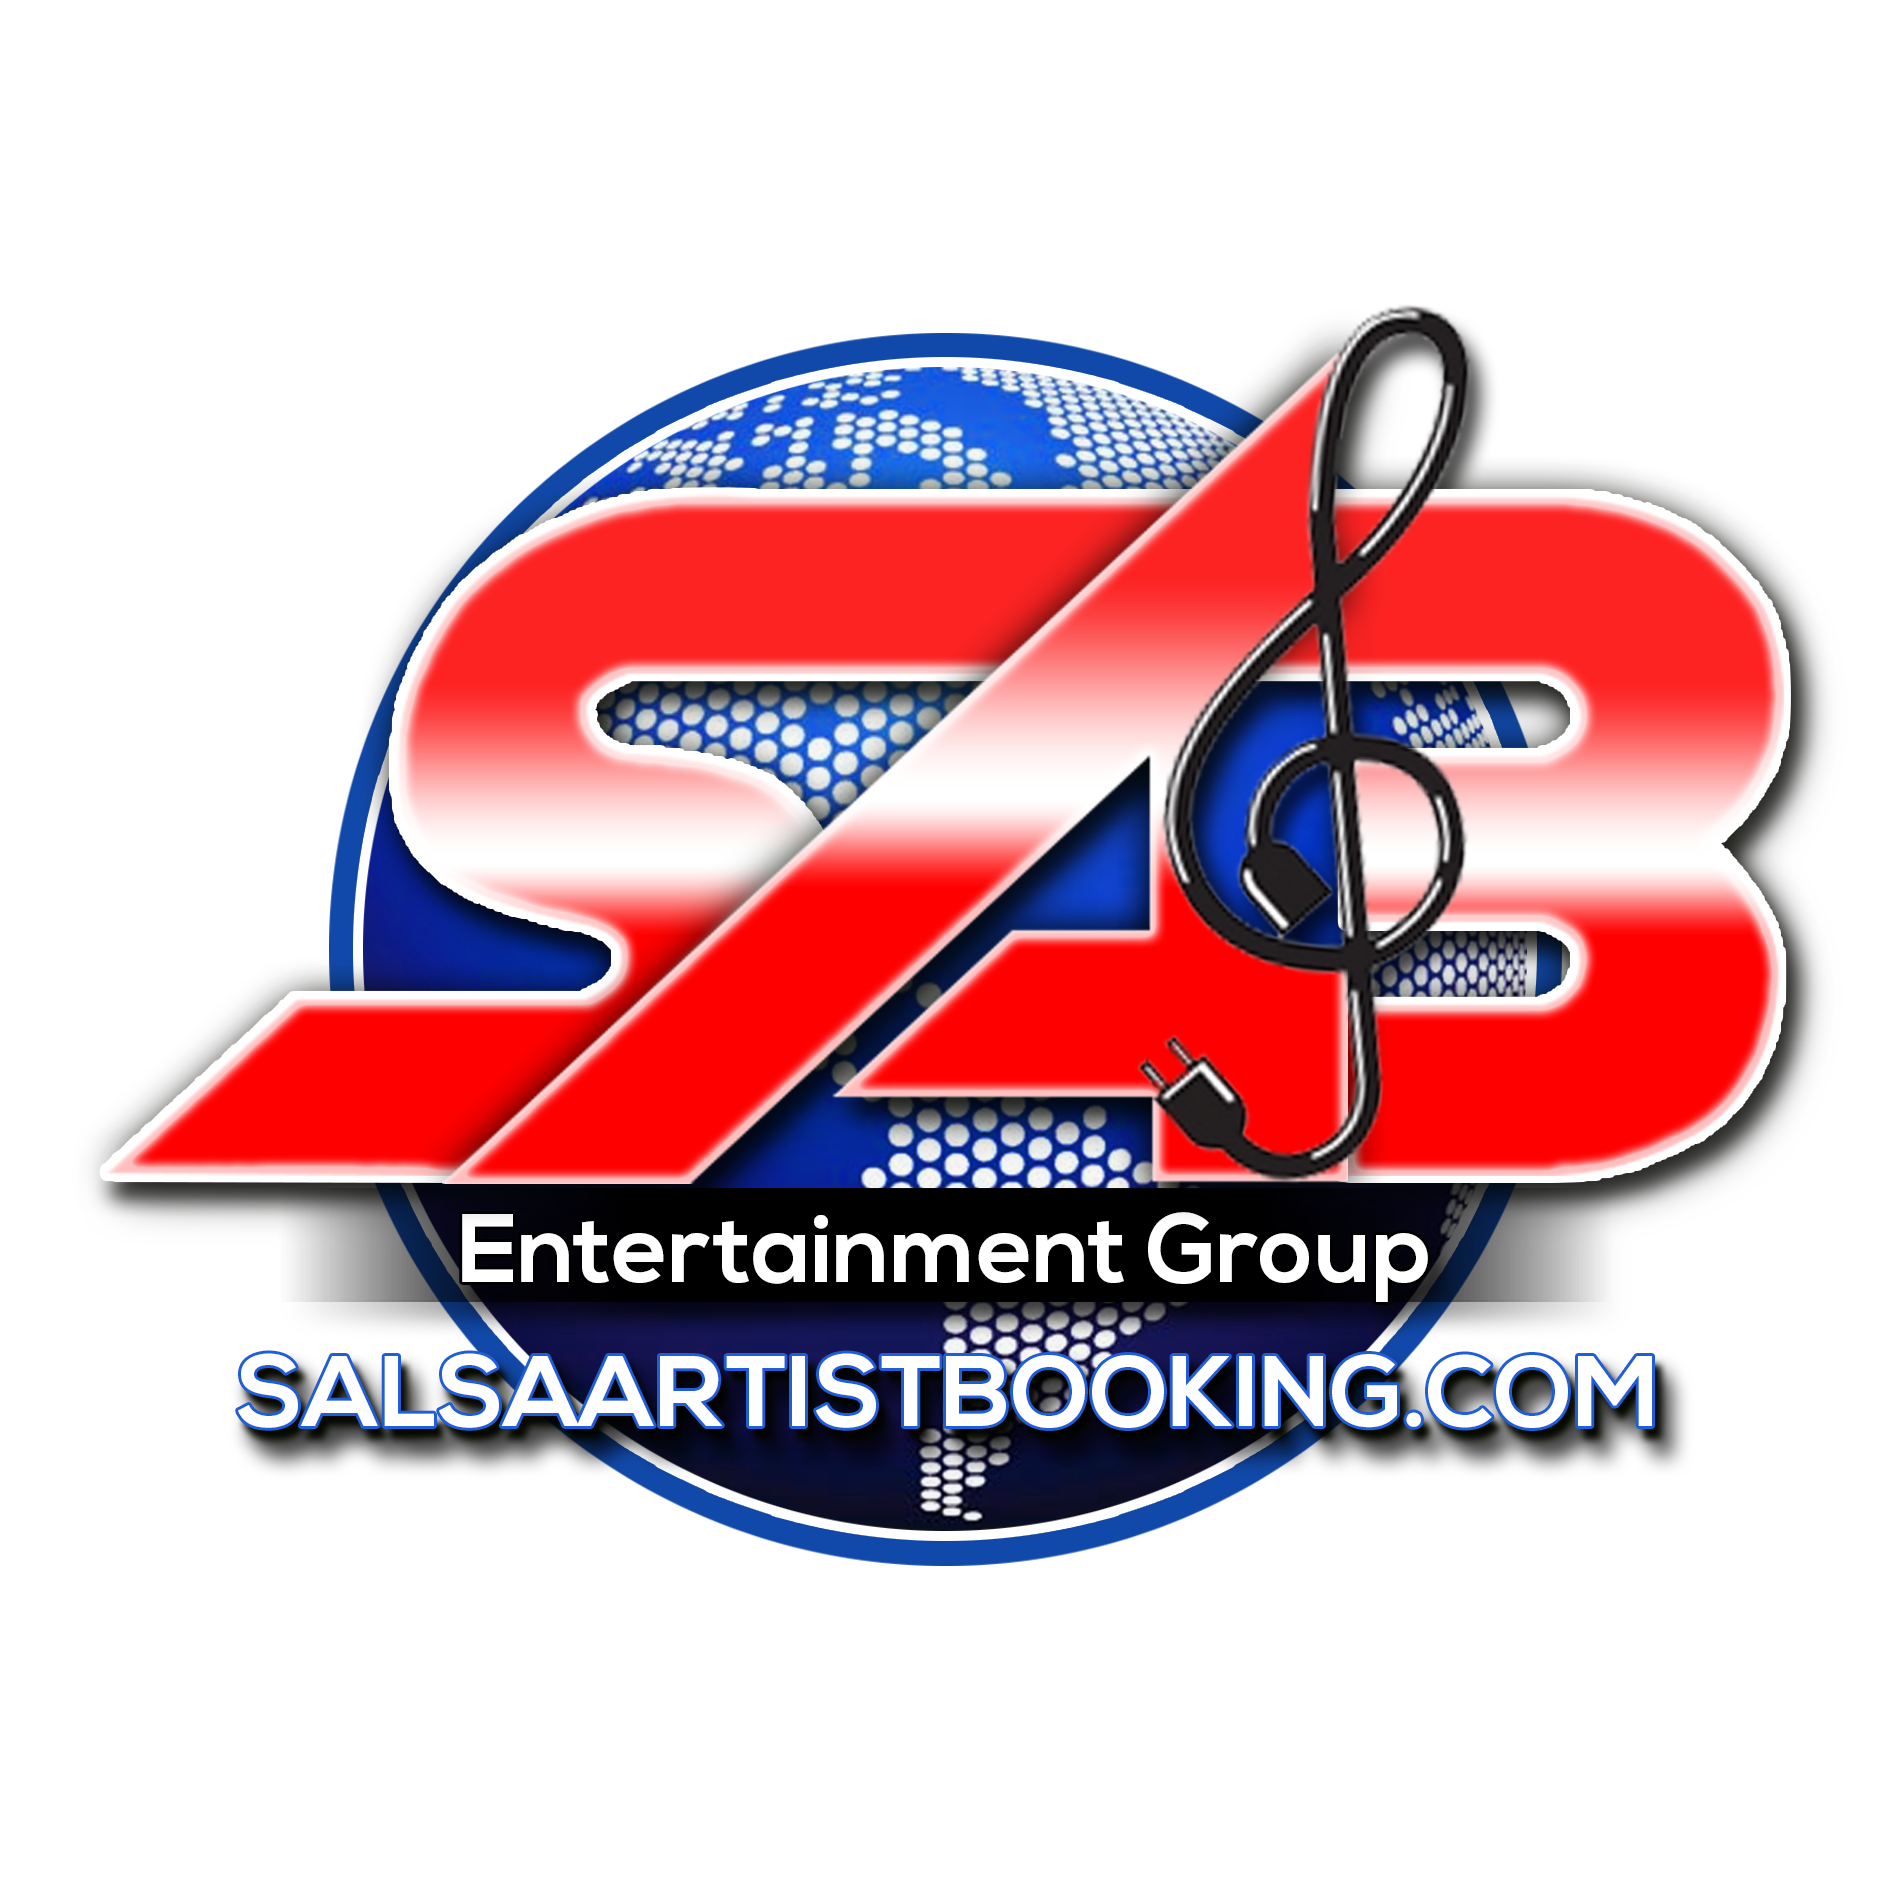 Salsa Artist Booking - SAB- Entertainment Group